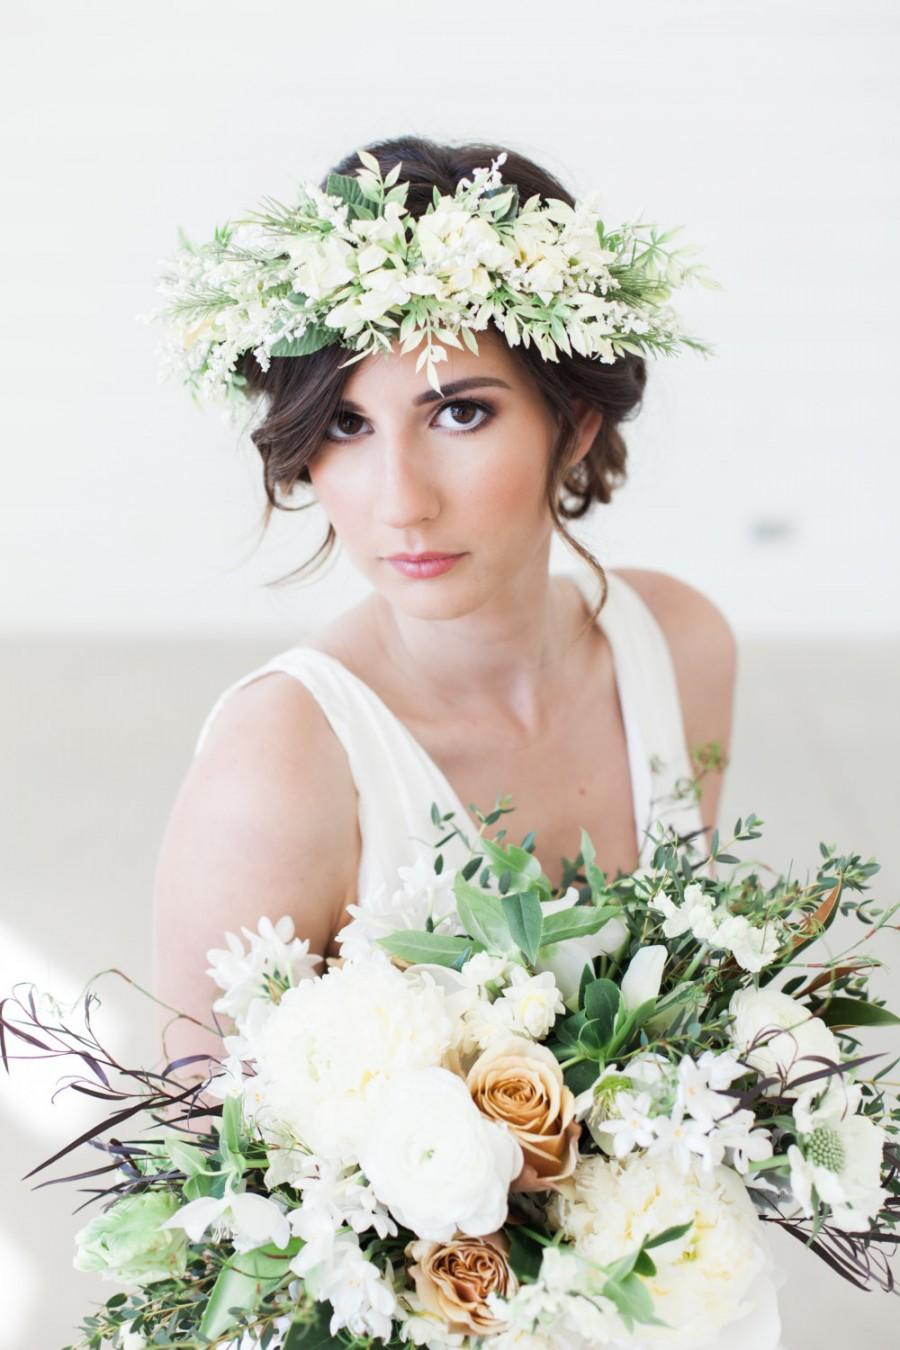 Bridal Flower Wreath b79e8f926af